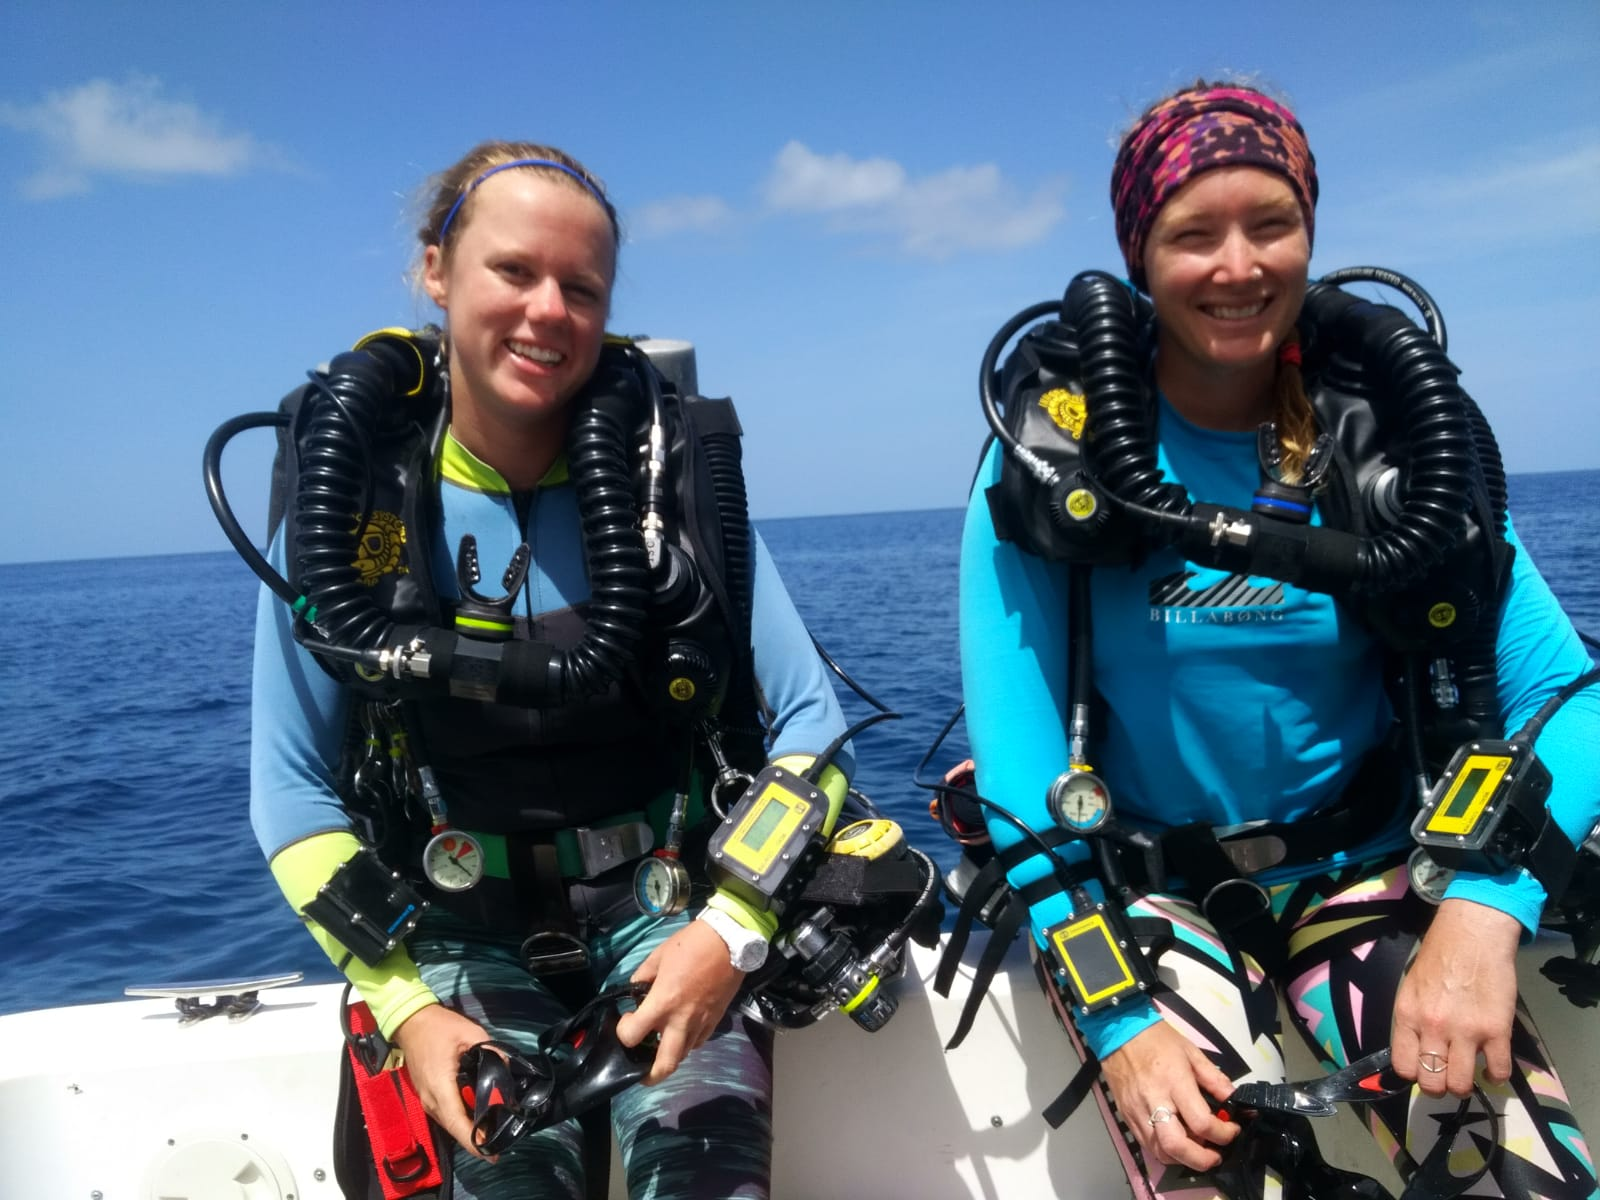 Heidmann and Ennis returning from a recent Closed Circuit Rebreather (CCR) training dive. Photo by Viktor Brandtneris